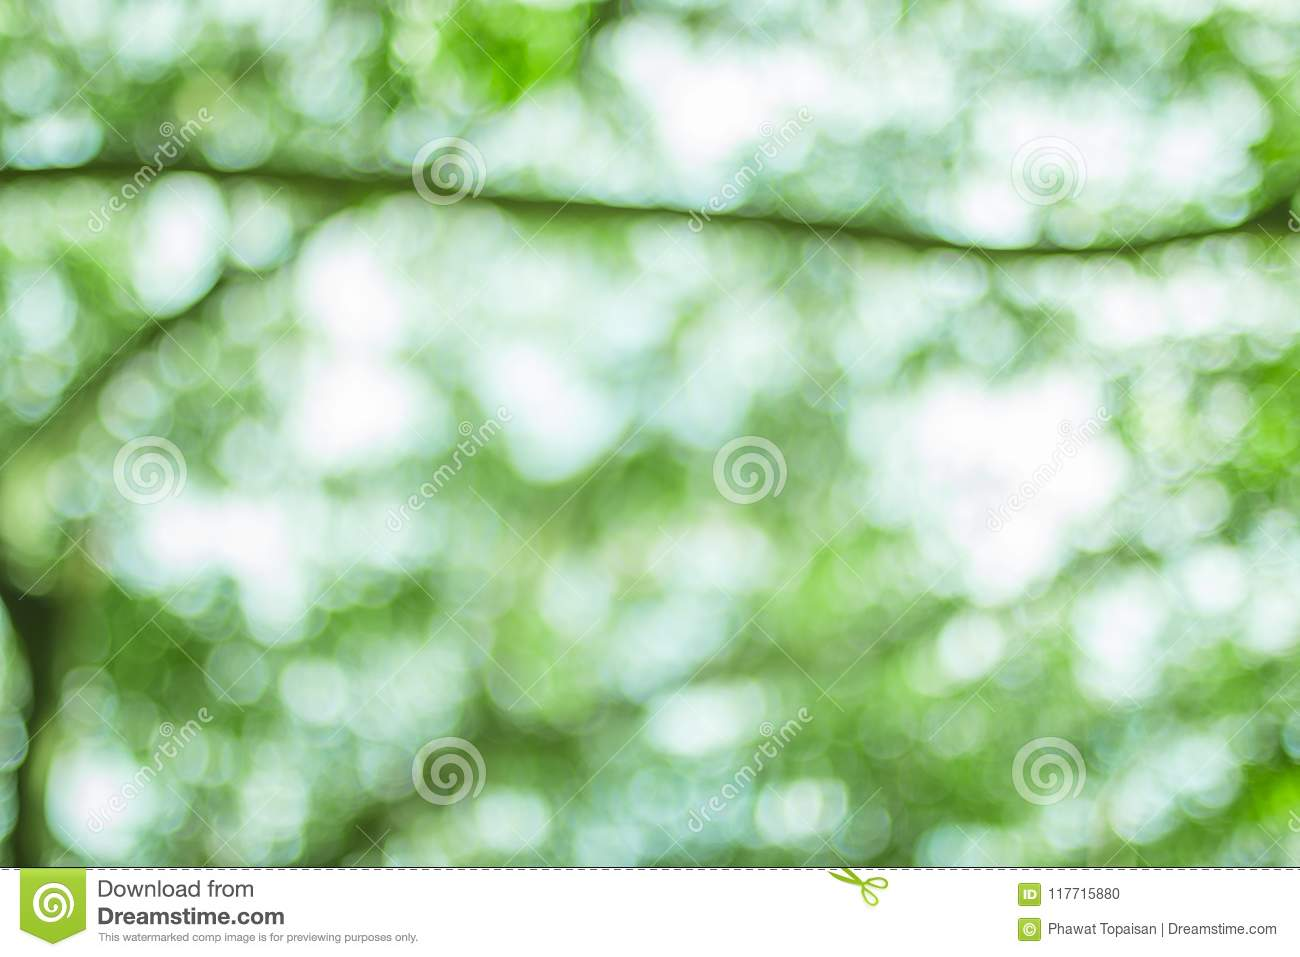 Natural bokeh background, Fresh healthy green bio background with abstract blurred foliage and bright summer sunlight.